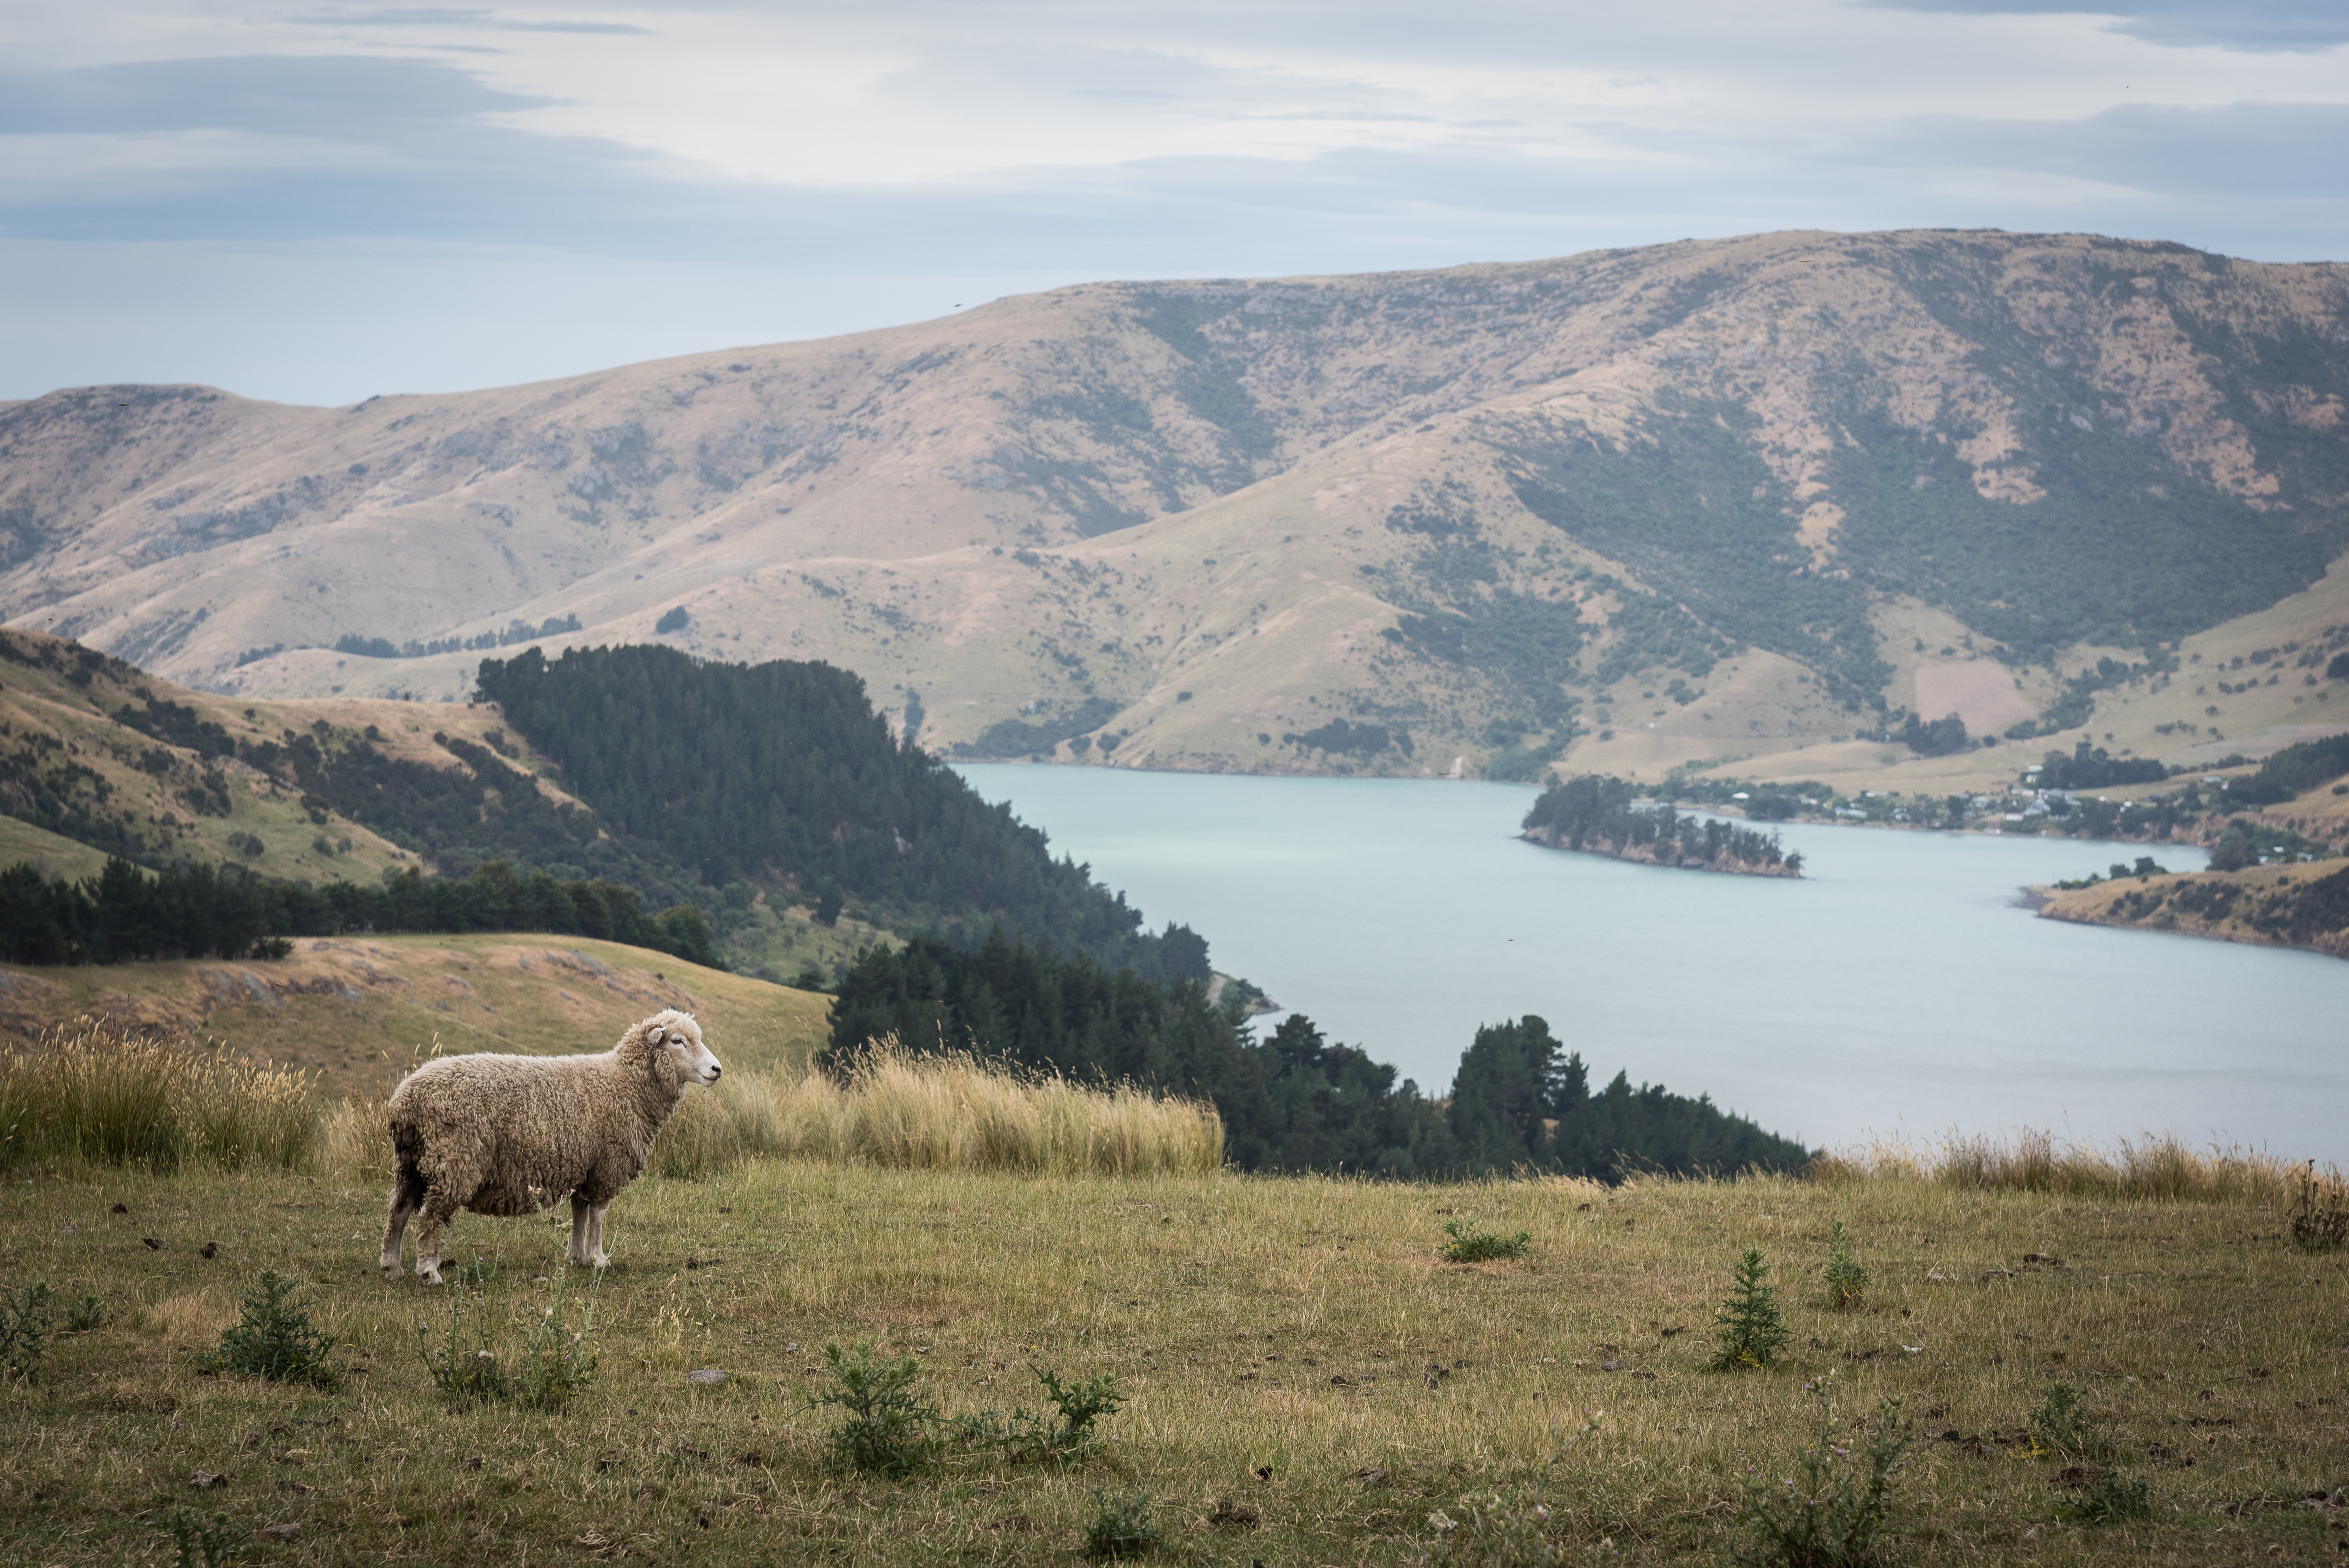 sheep standing on elevated ground overlooking lake during daytime